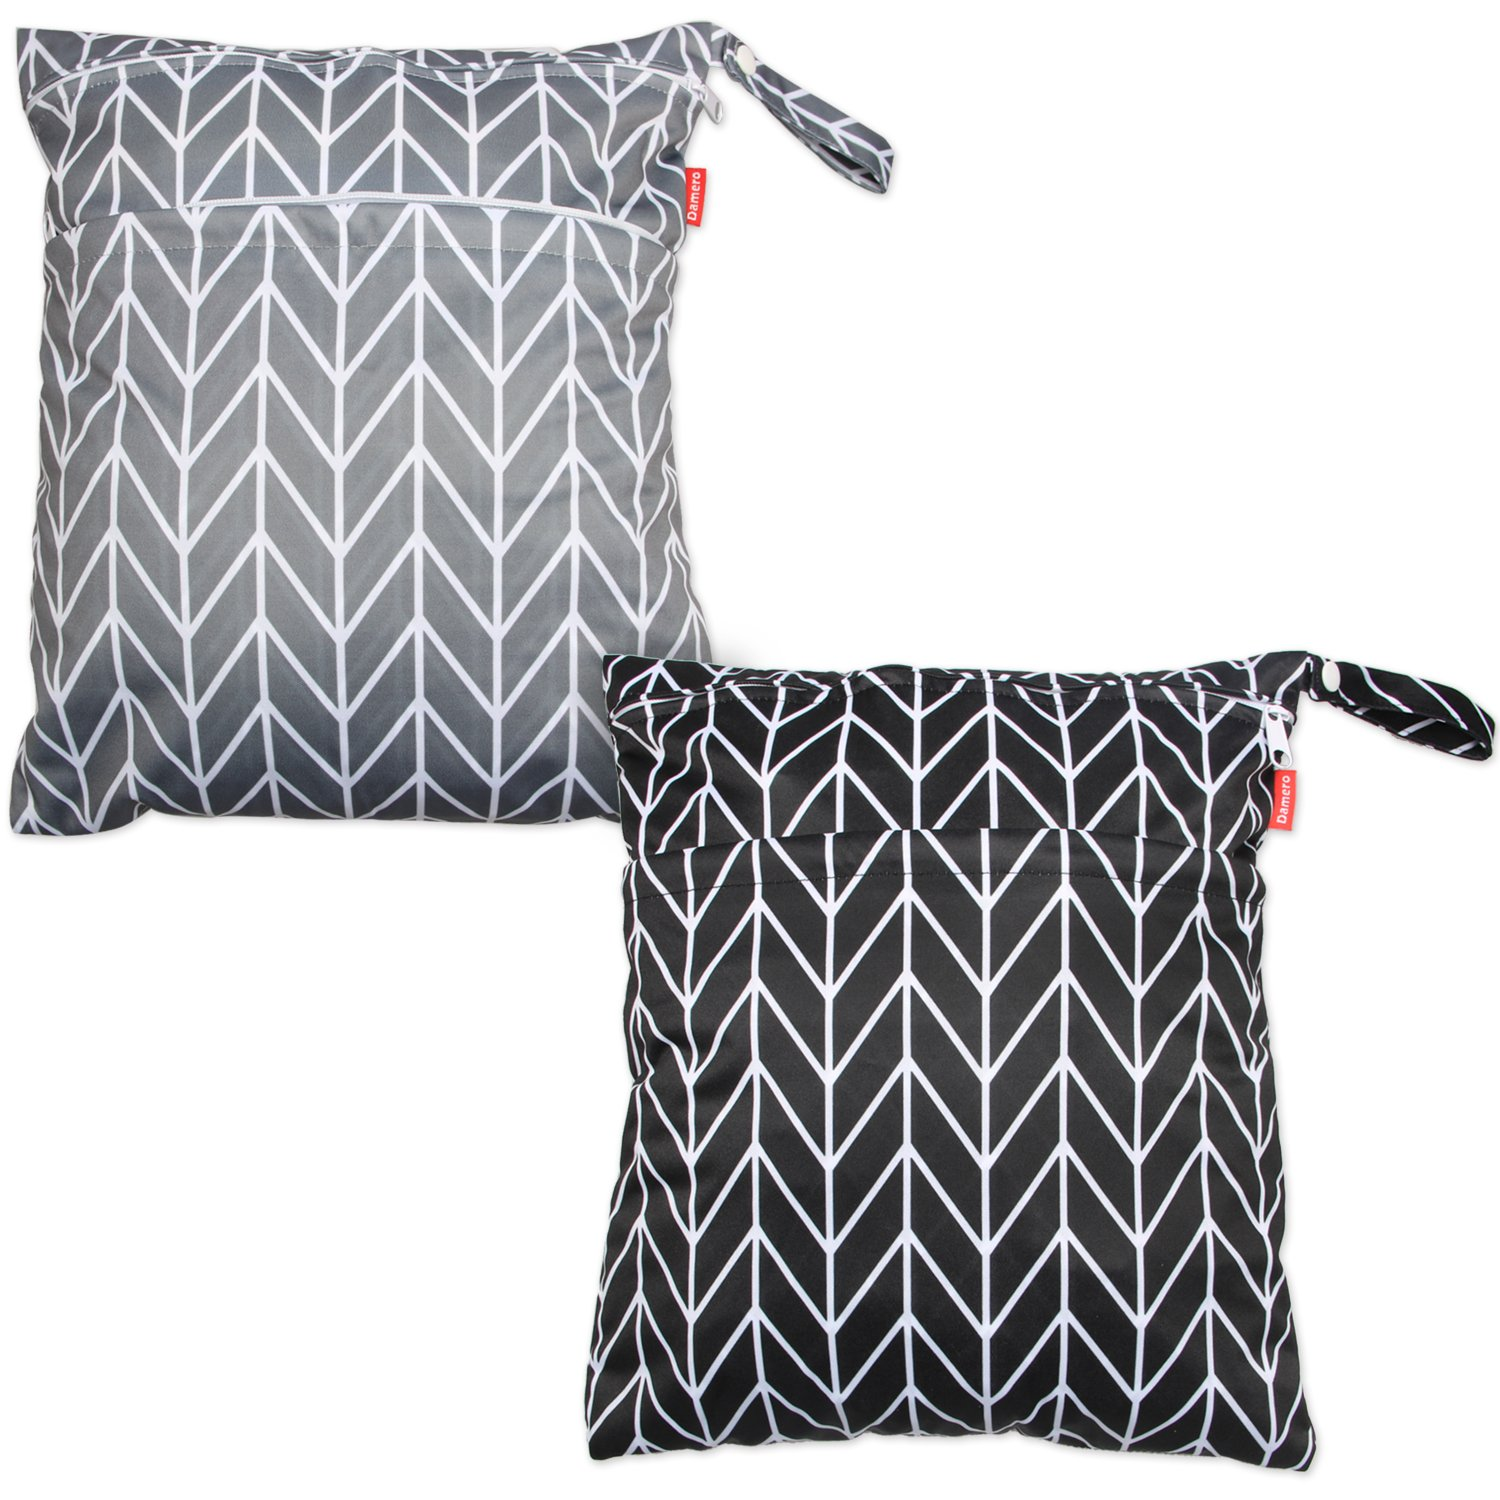 Pumping Parts Swimsuit and More Damero 2pcs Travel Wet and Dry Bag with Handle for Cloth Diaper Easy to Grab and Go Clothes Medium, Gray Srips+ Black Strips